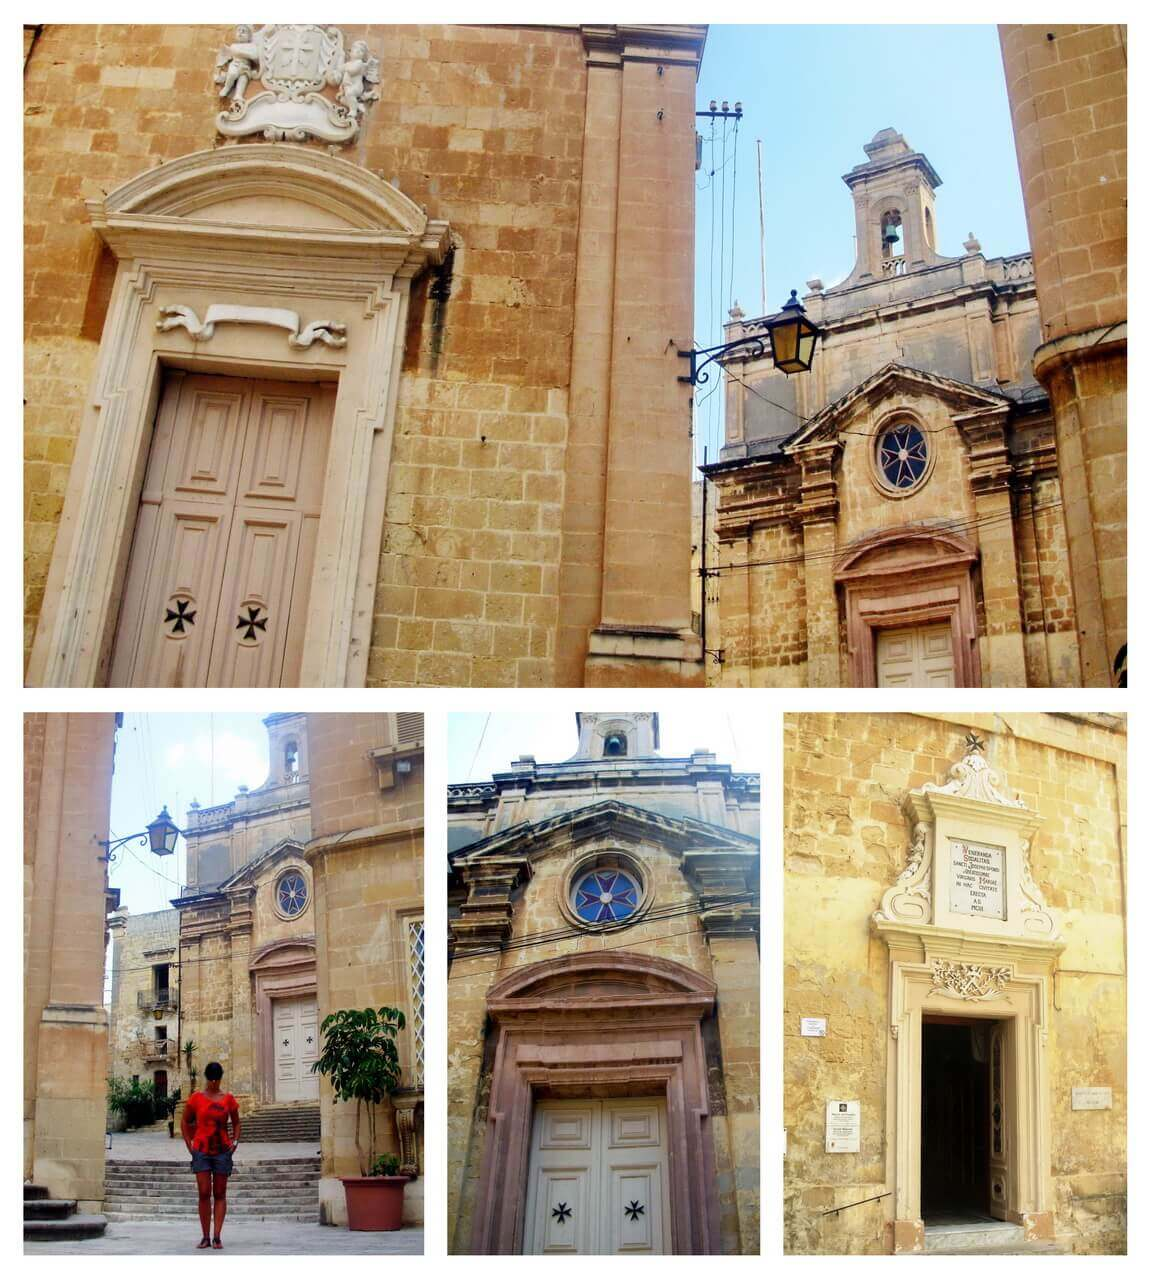 The Oratory of the Holy Cross. and Oratory of St Joseph, Birgu